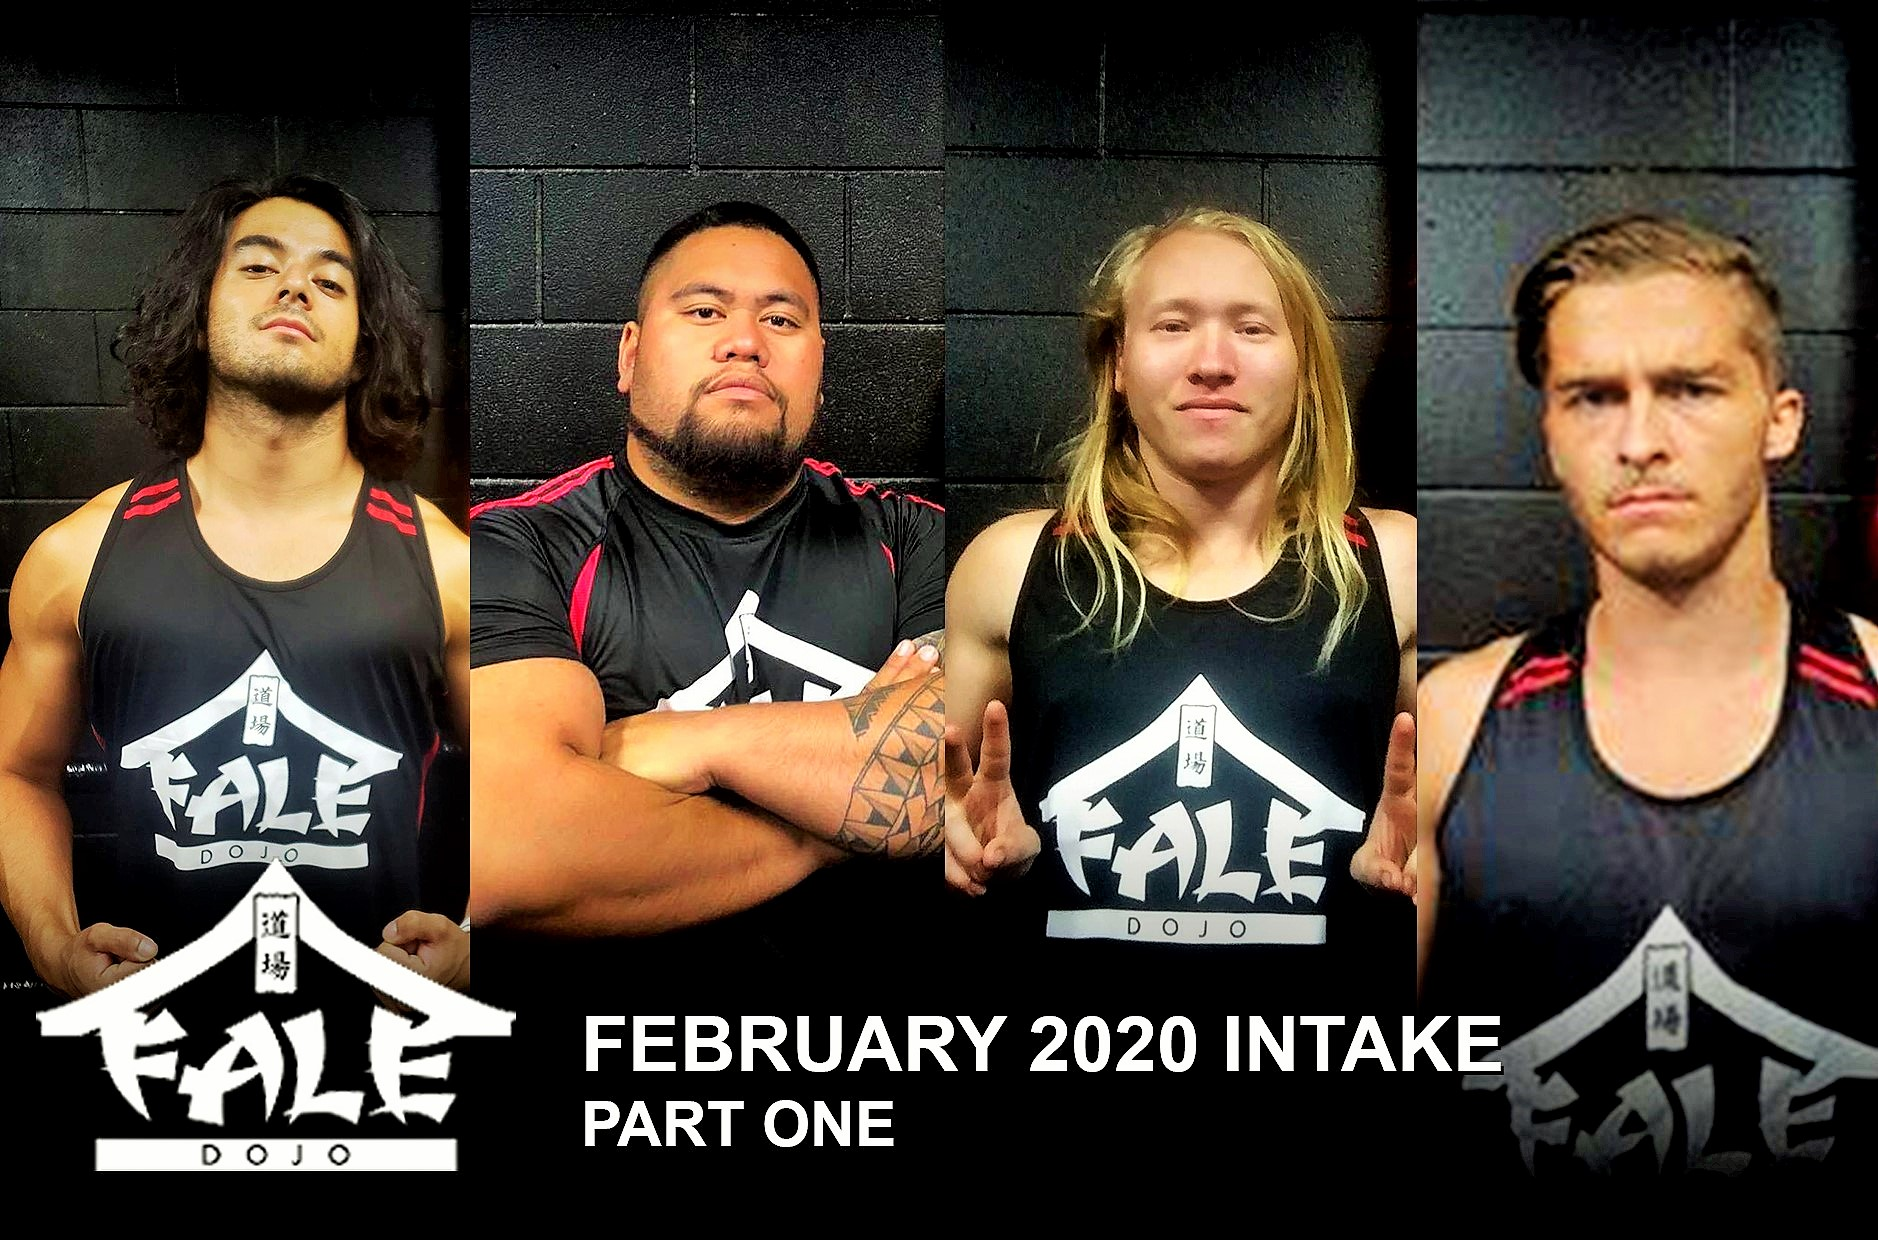 Fale Dojo 2020 February Intake – Part One